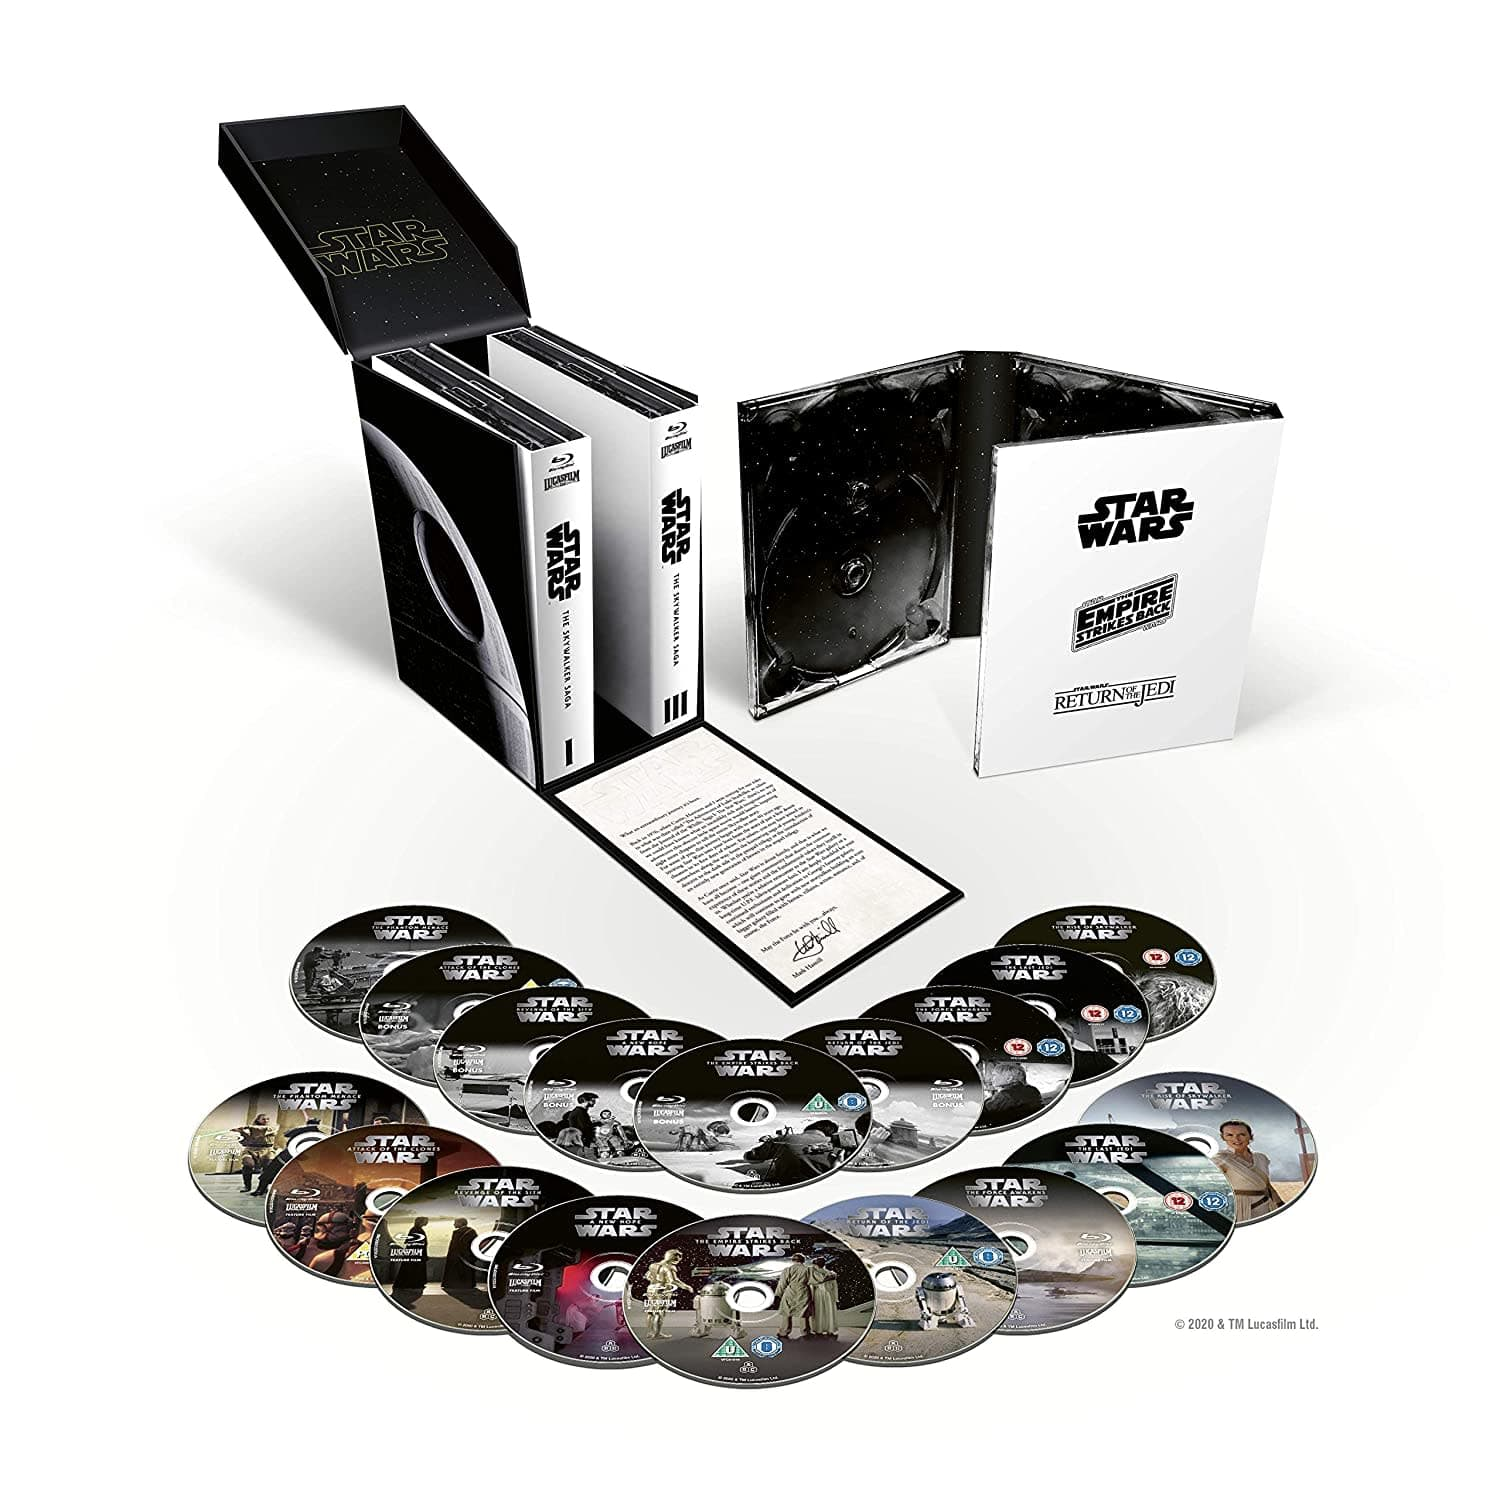 Star Wars: The Skywalker Saga Complete Blu-ray Box Set